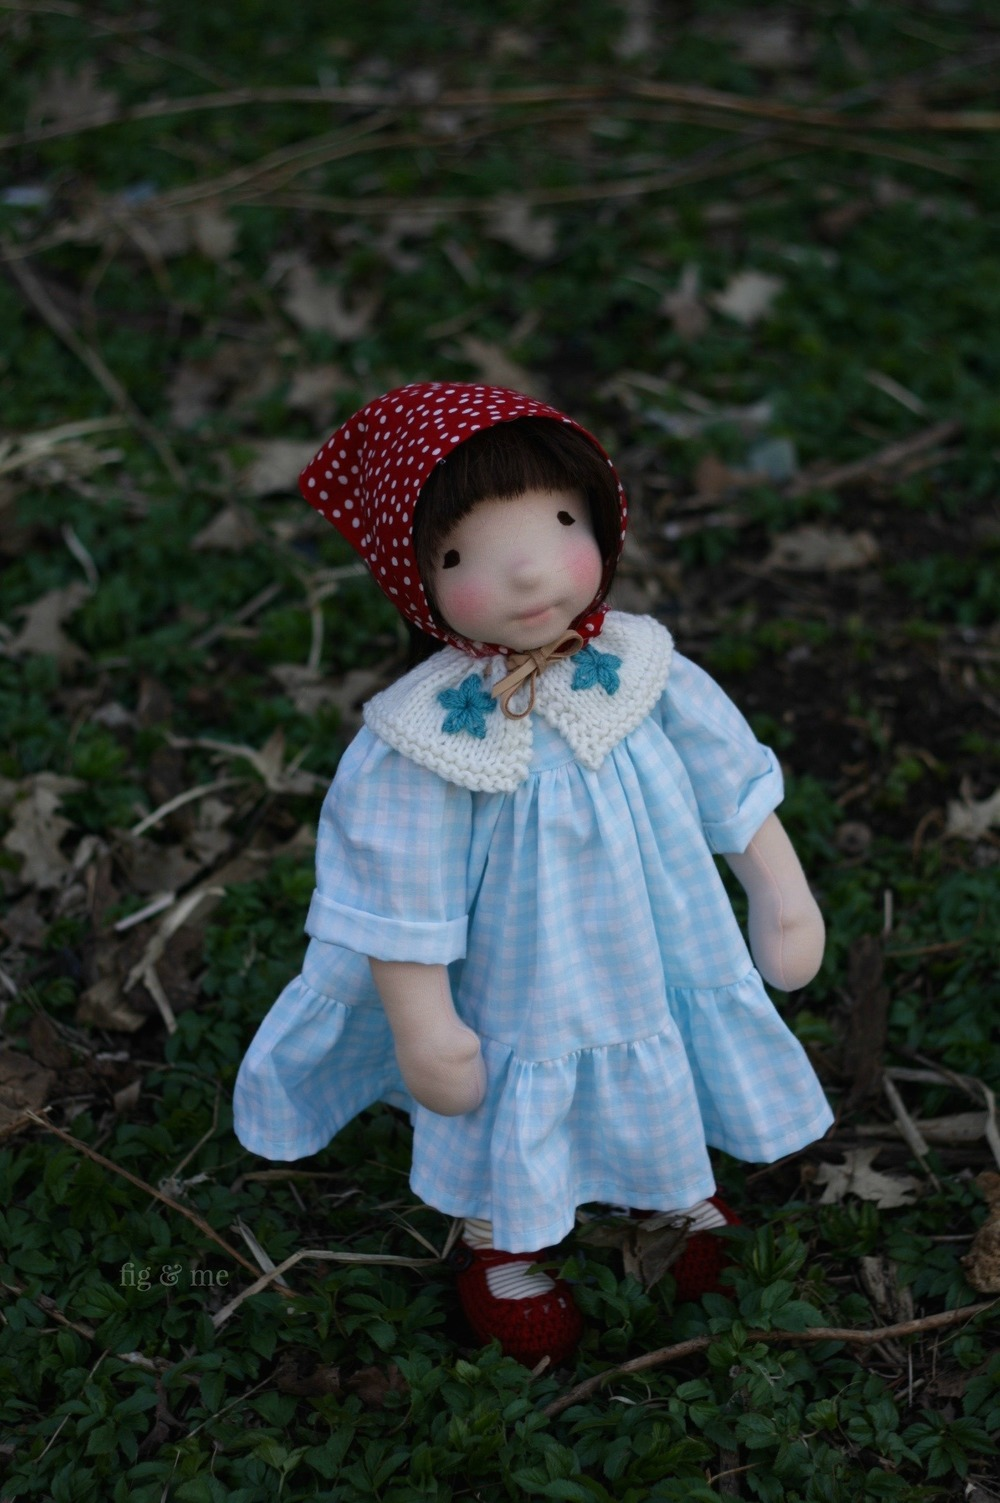 Wandering in the wicked green places. Imogen, a natural fiber art doll by Fig and Me. Wearing her gingham dress and dotted kerchief.